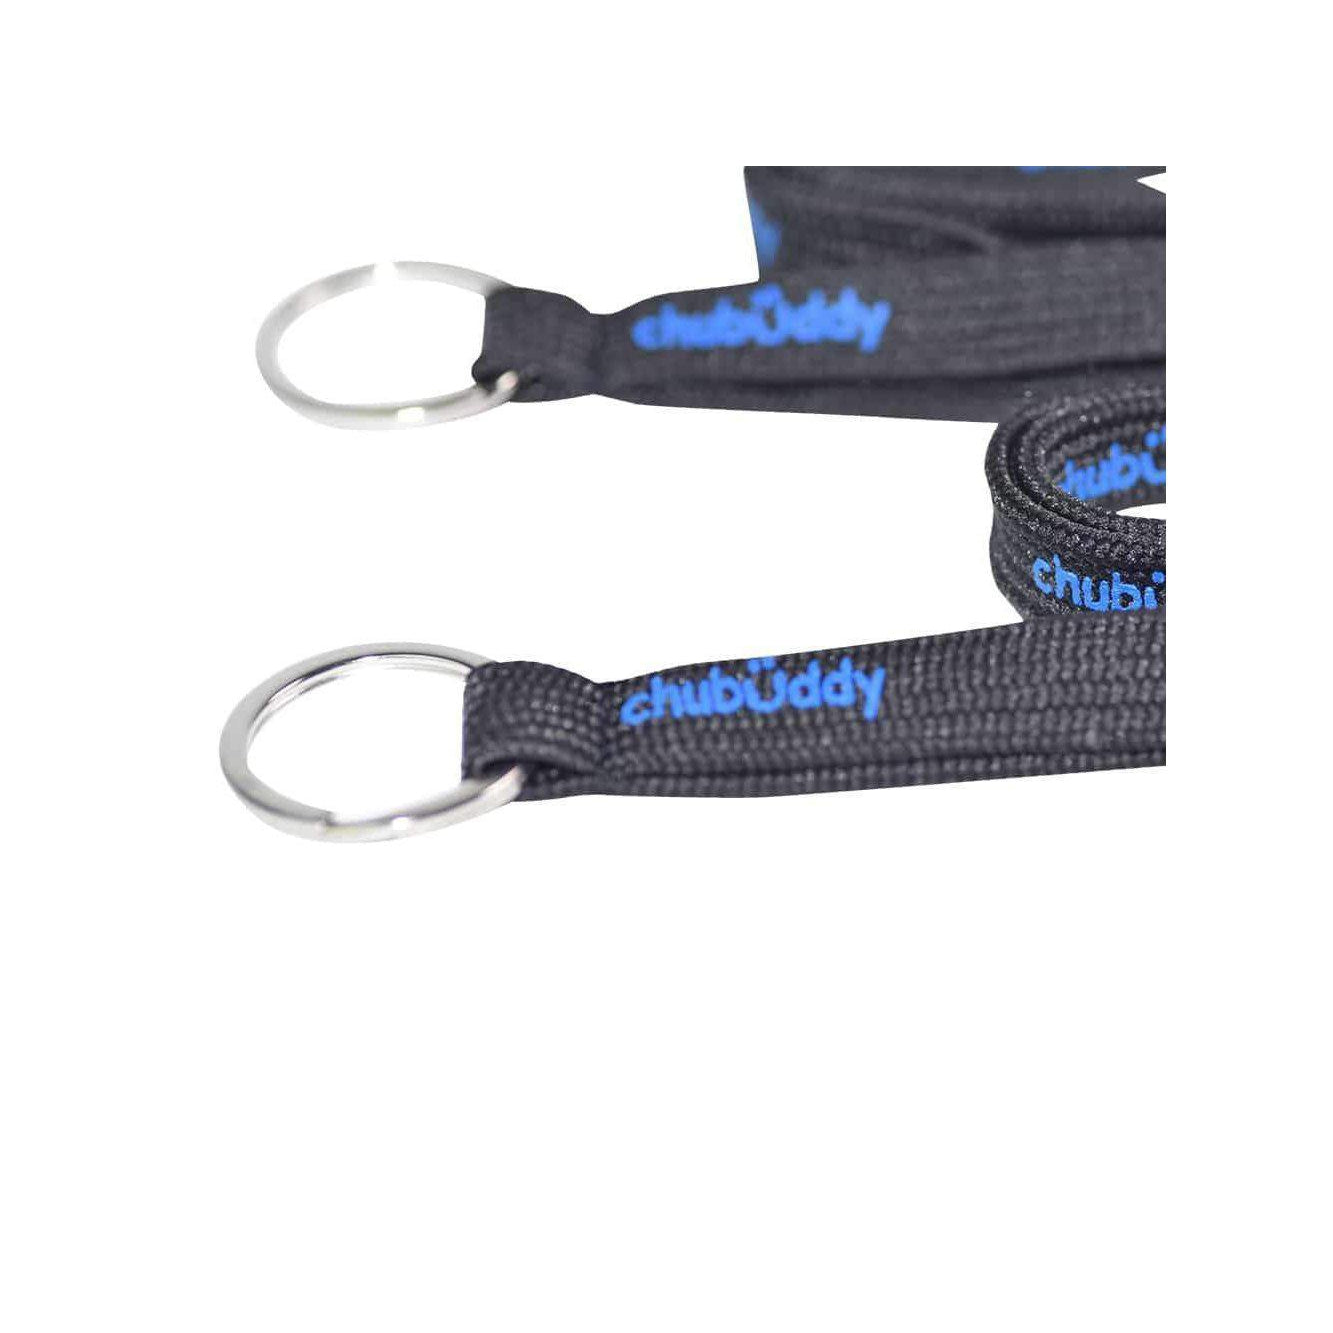 Neck Lanyard Chew Holder Set of (2) - 2 Black Lanyard & 2 Natural Strap